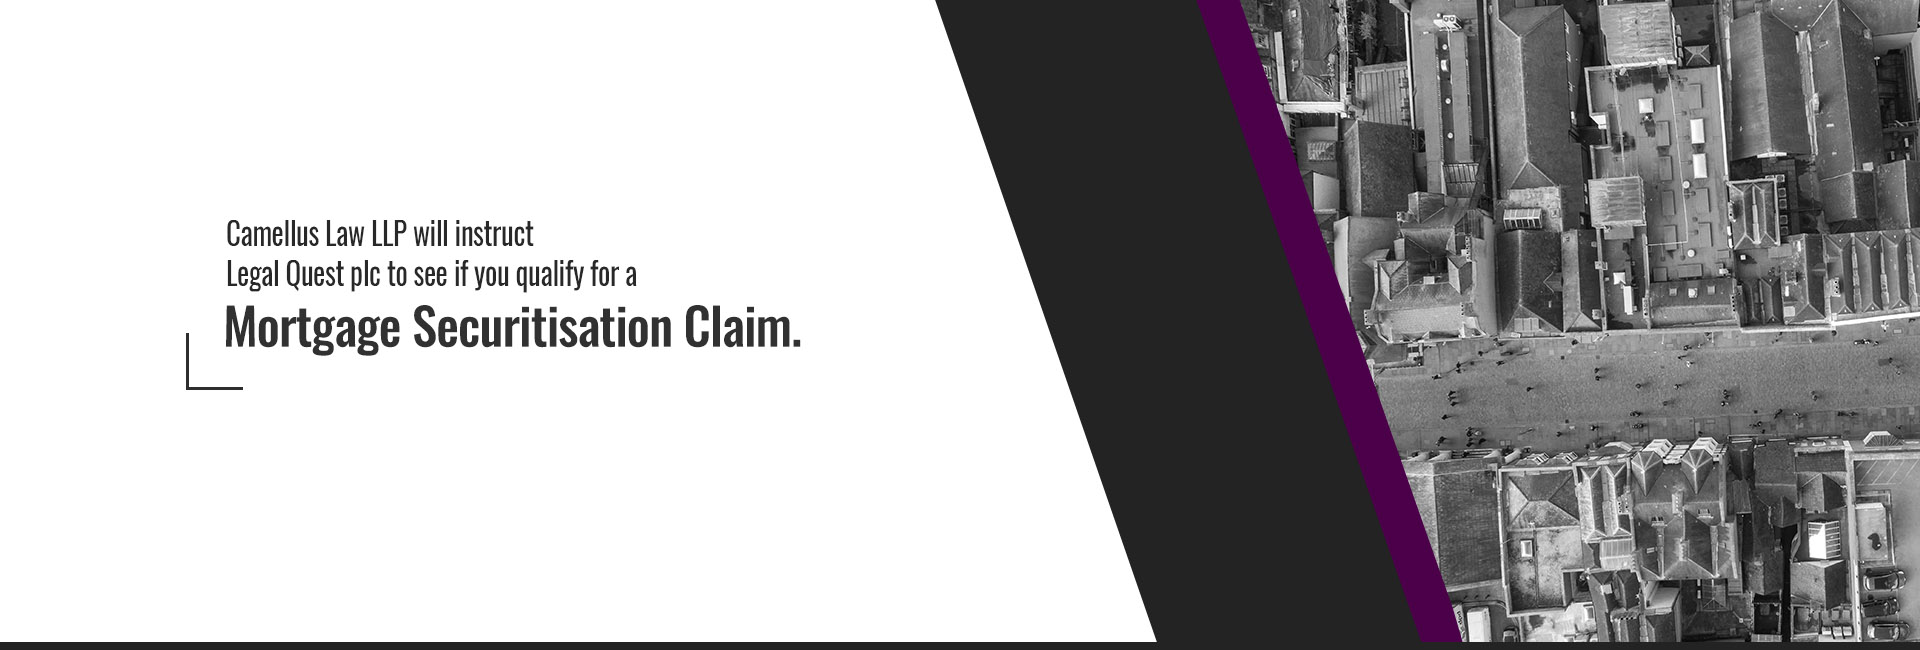 Do you have a Mortgage Securitisation Claim